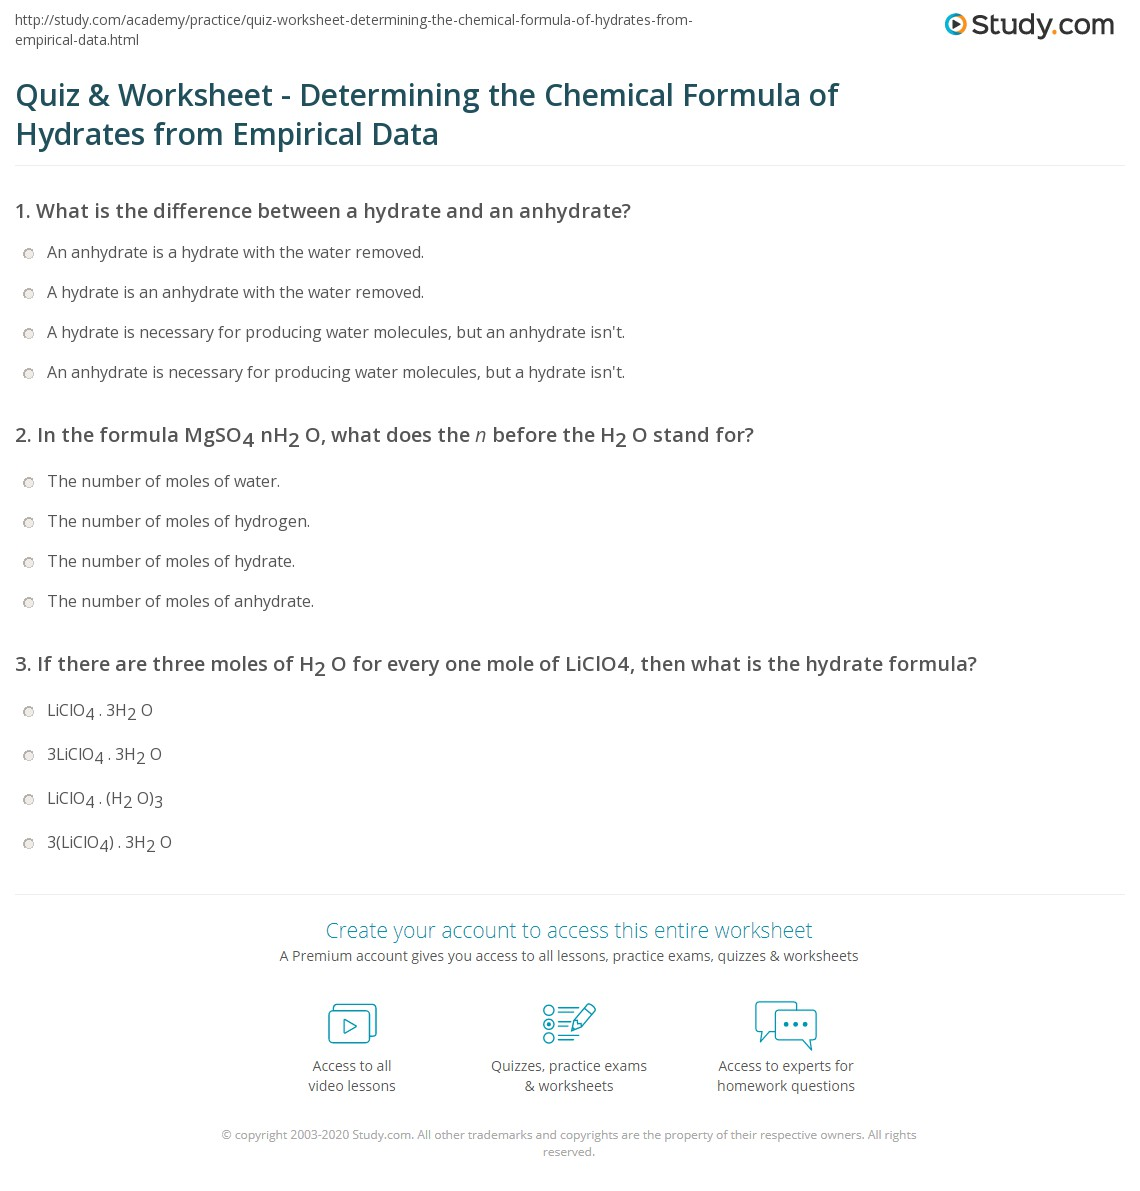 Worksheet Chemical Formulas Worksheet quiz worksheet determining the chemical formula of hydrates print from empirical data worksheet